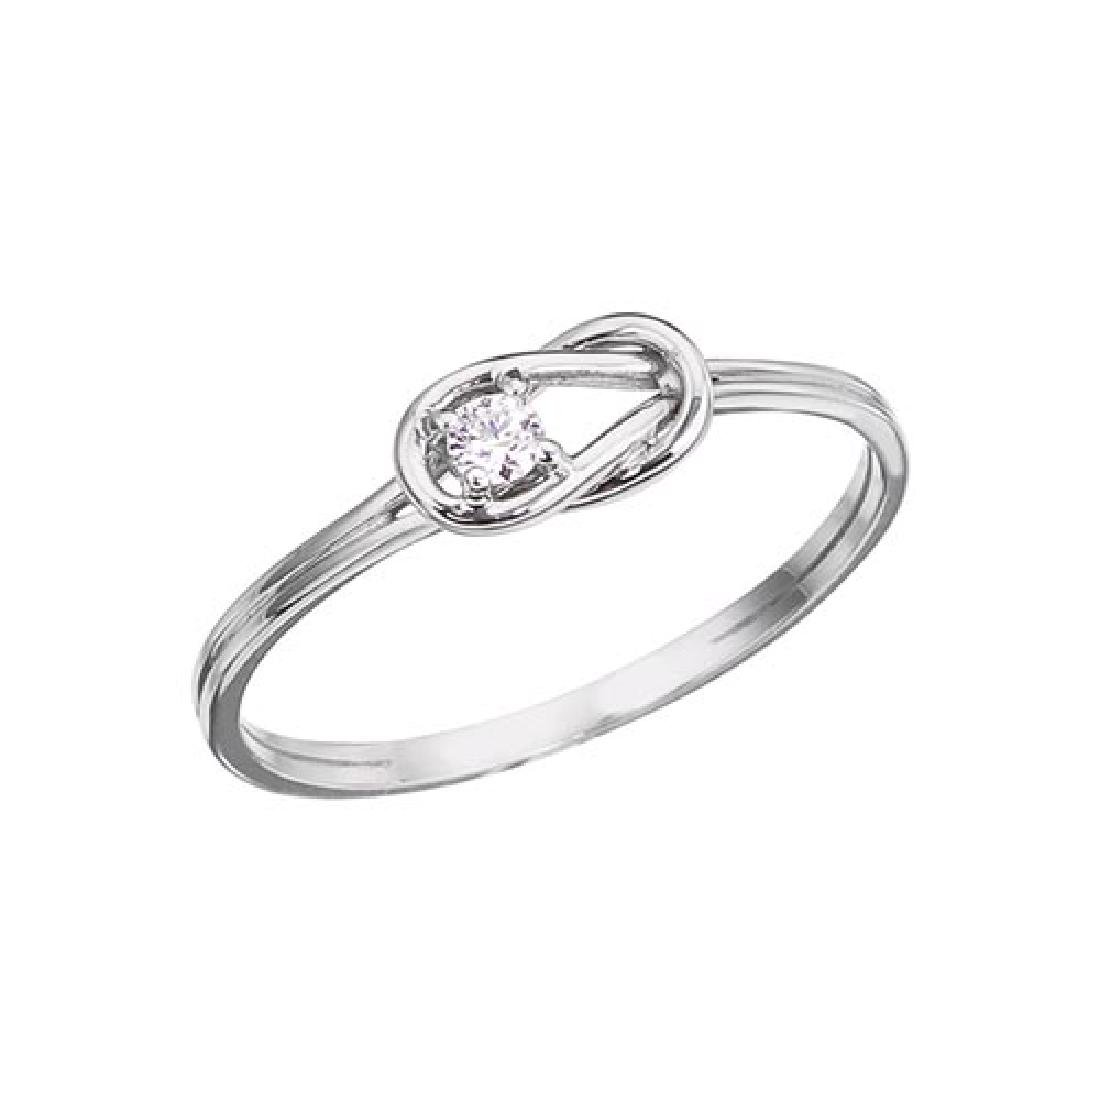 Certified 14K White Gold Boaters Knot Diamond Ring 0.07